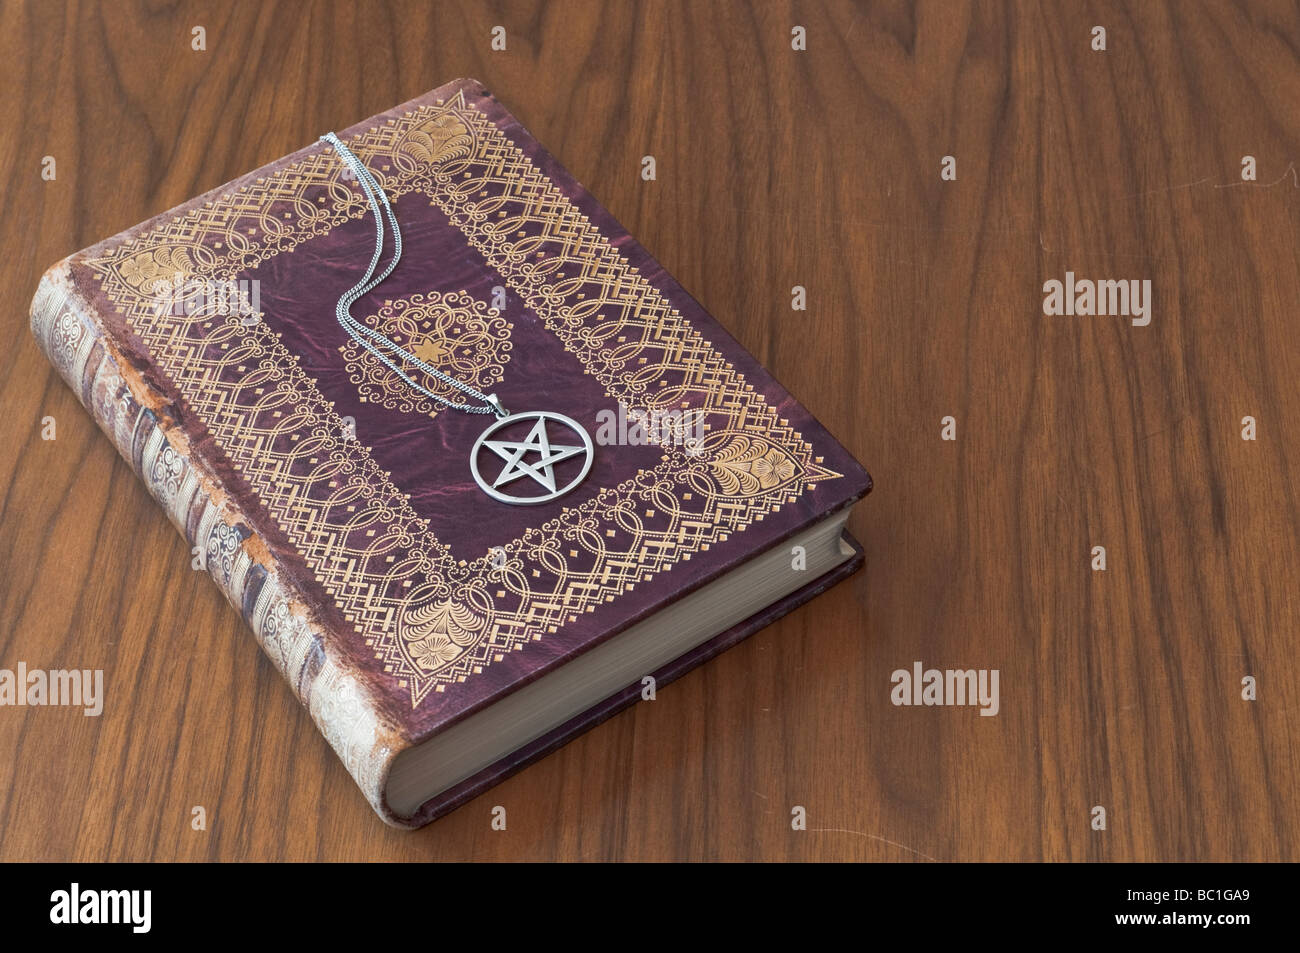 Silver necklace with inverted pentagram on an old book. - Stock Image